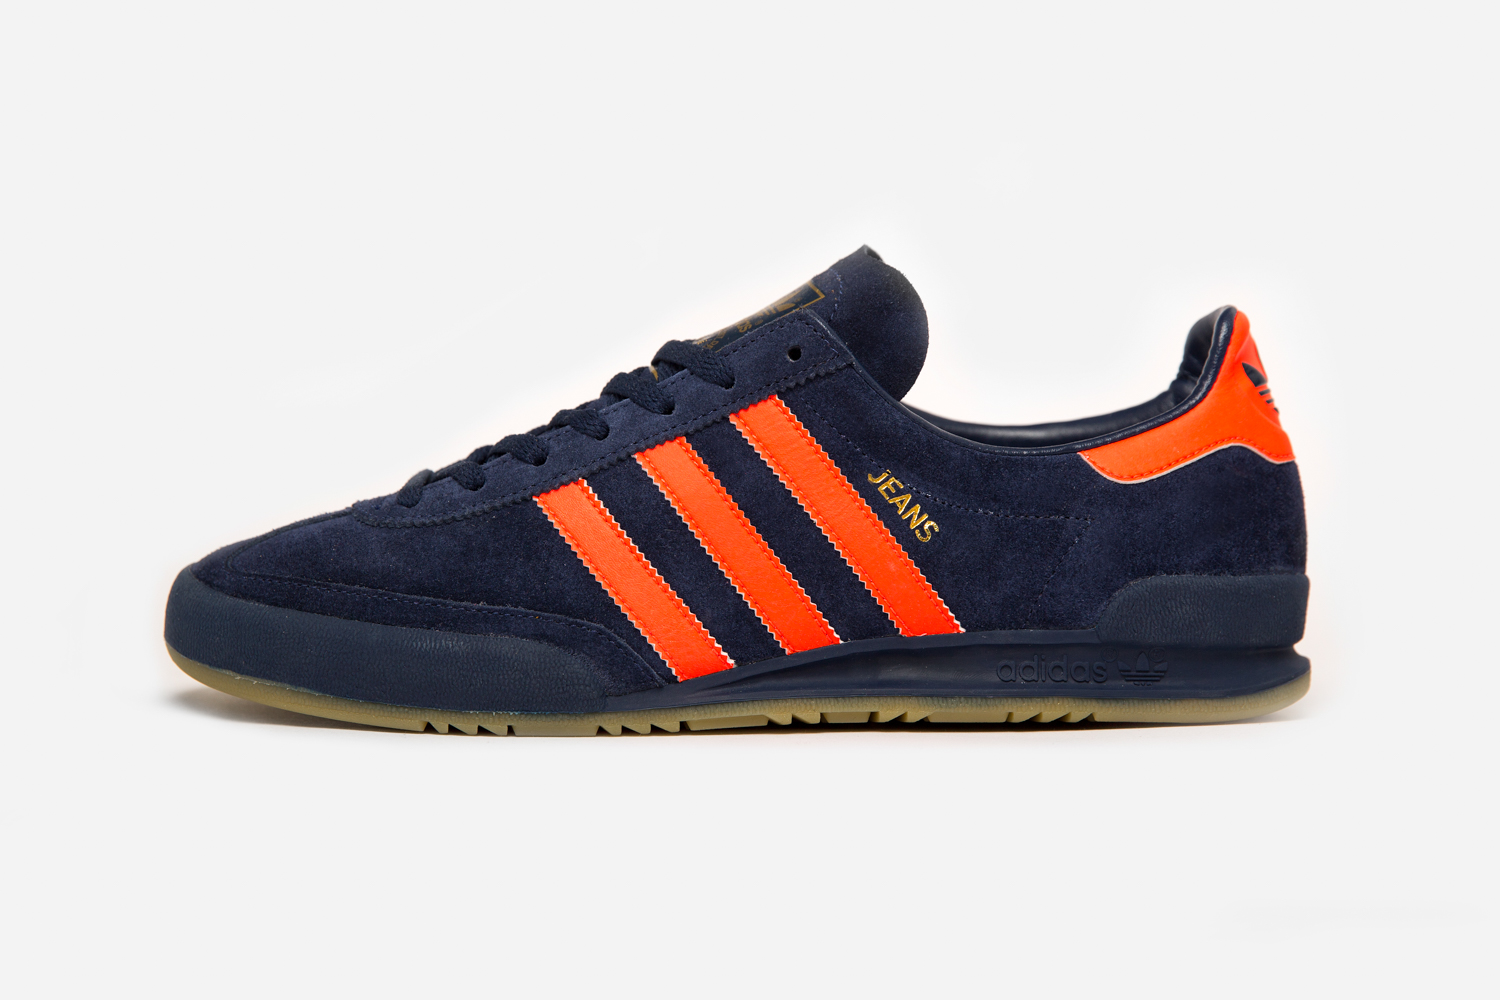 adidas Originals Archive Jeans MK II – size? Exclusive